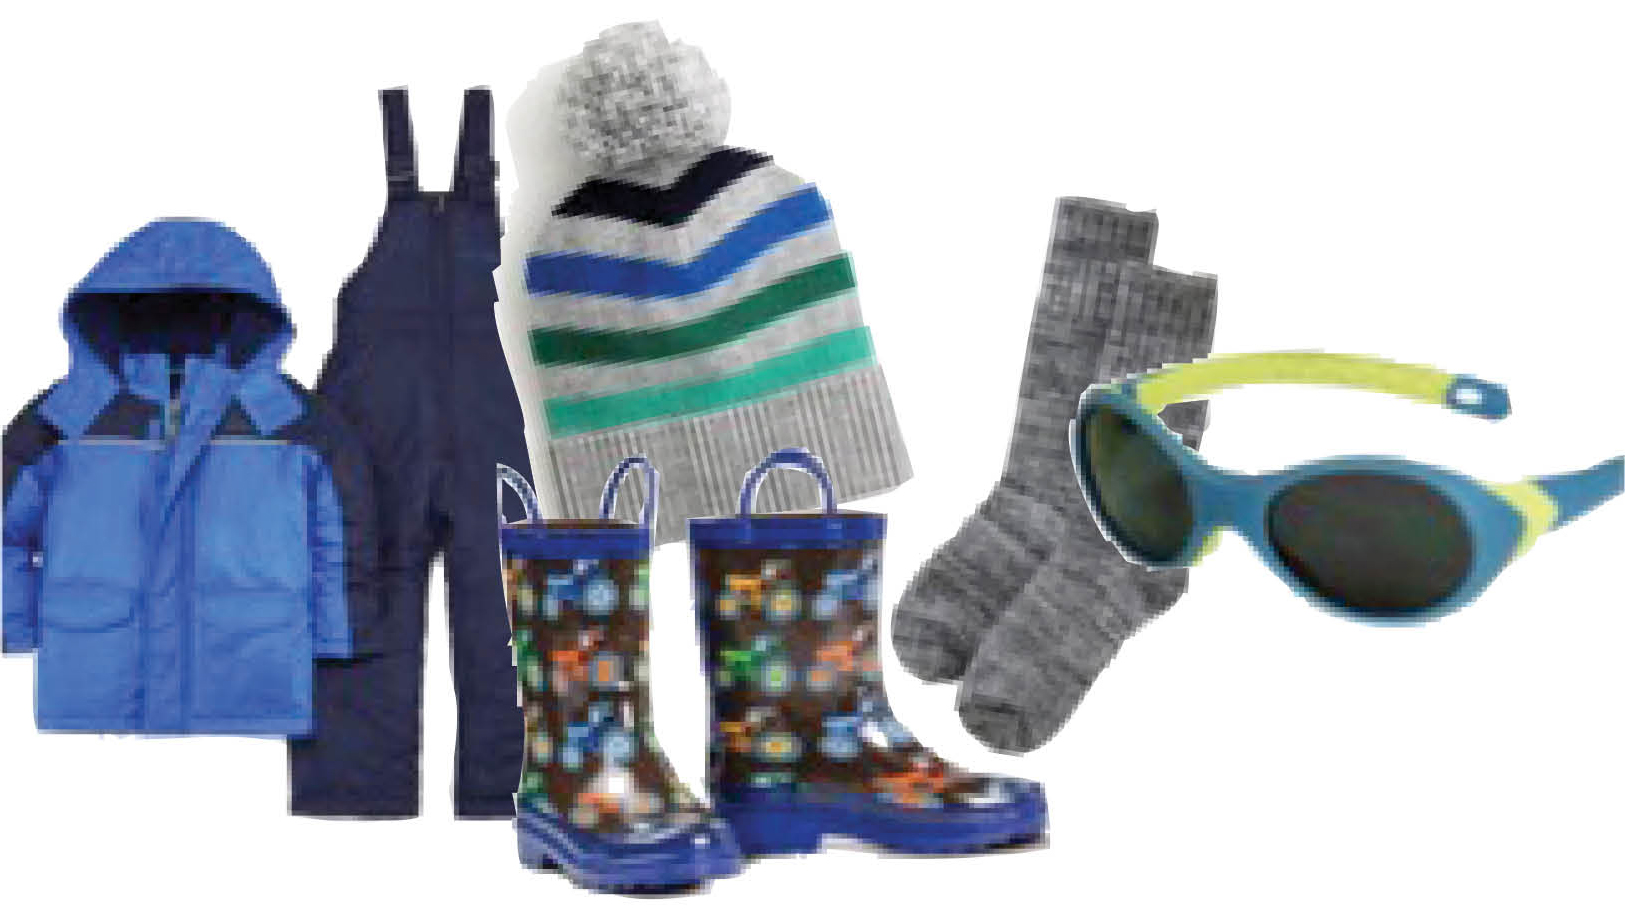 Wardrobe must-haves also include: thick wool socks with rain boots or snow boots. A Snow suit or coveralls, warm beanies and shades! Sunglasses are a bonus when playing in the snow.